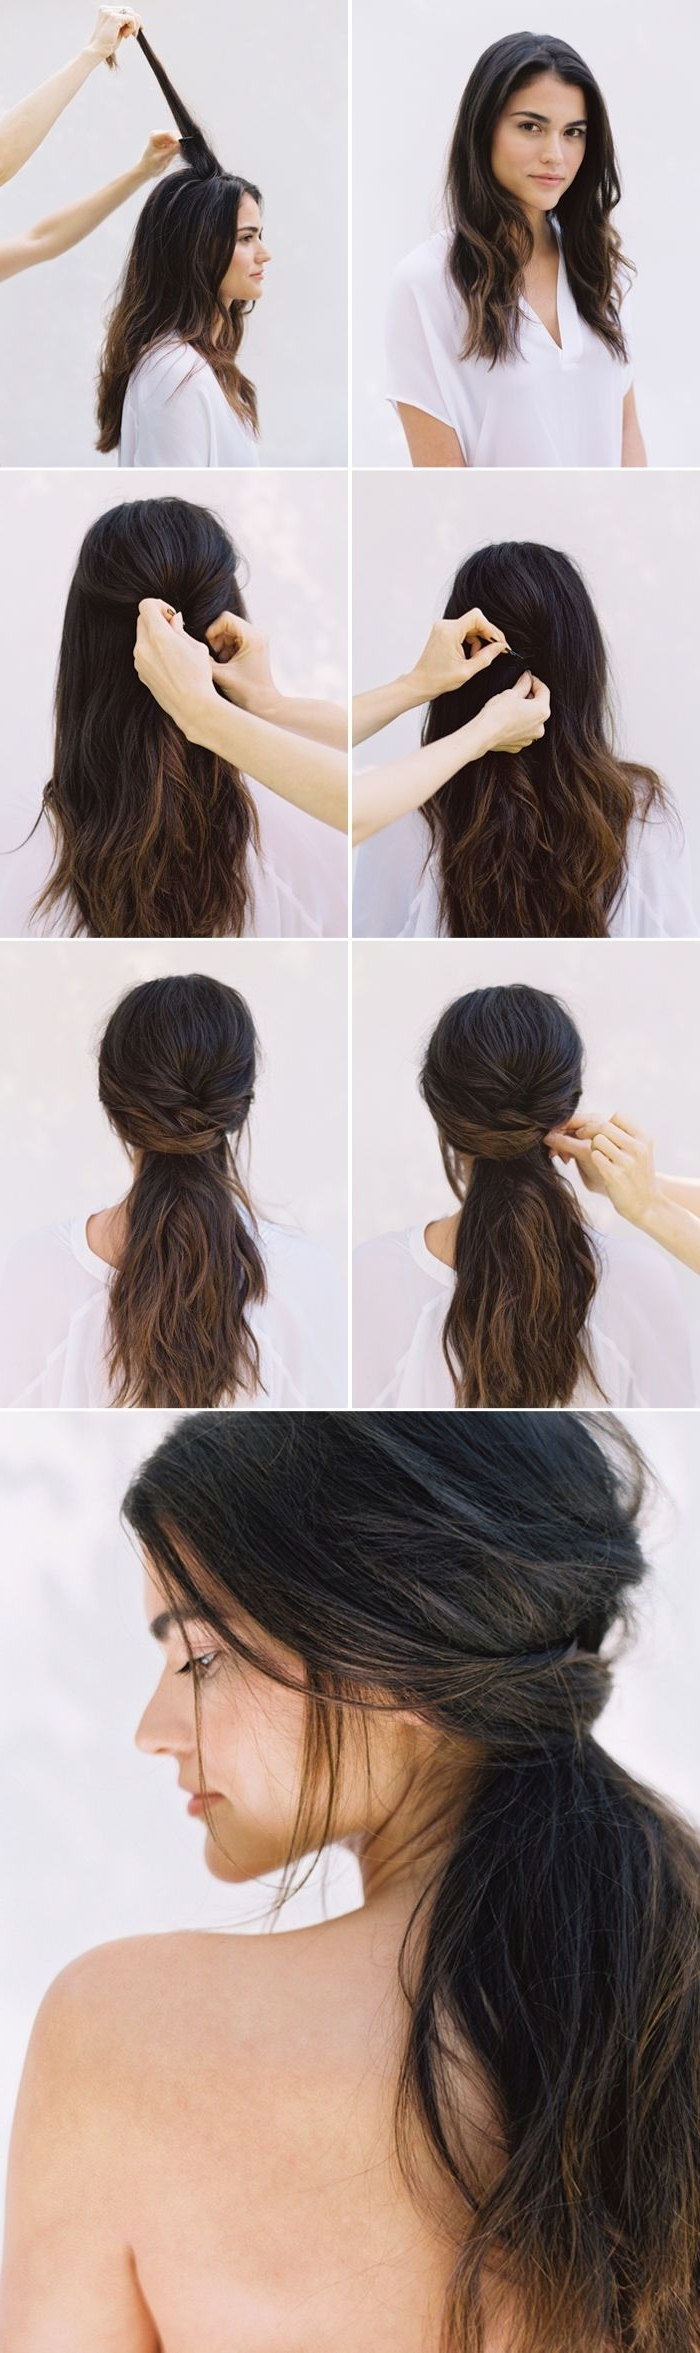 23 Stunning Half Up Half Down Wedding Hairstyles For 2016 – Pretty Regarding Latest Diy Simple Wedding Hairstyles For Long Hair (View 4 of 15)